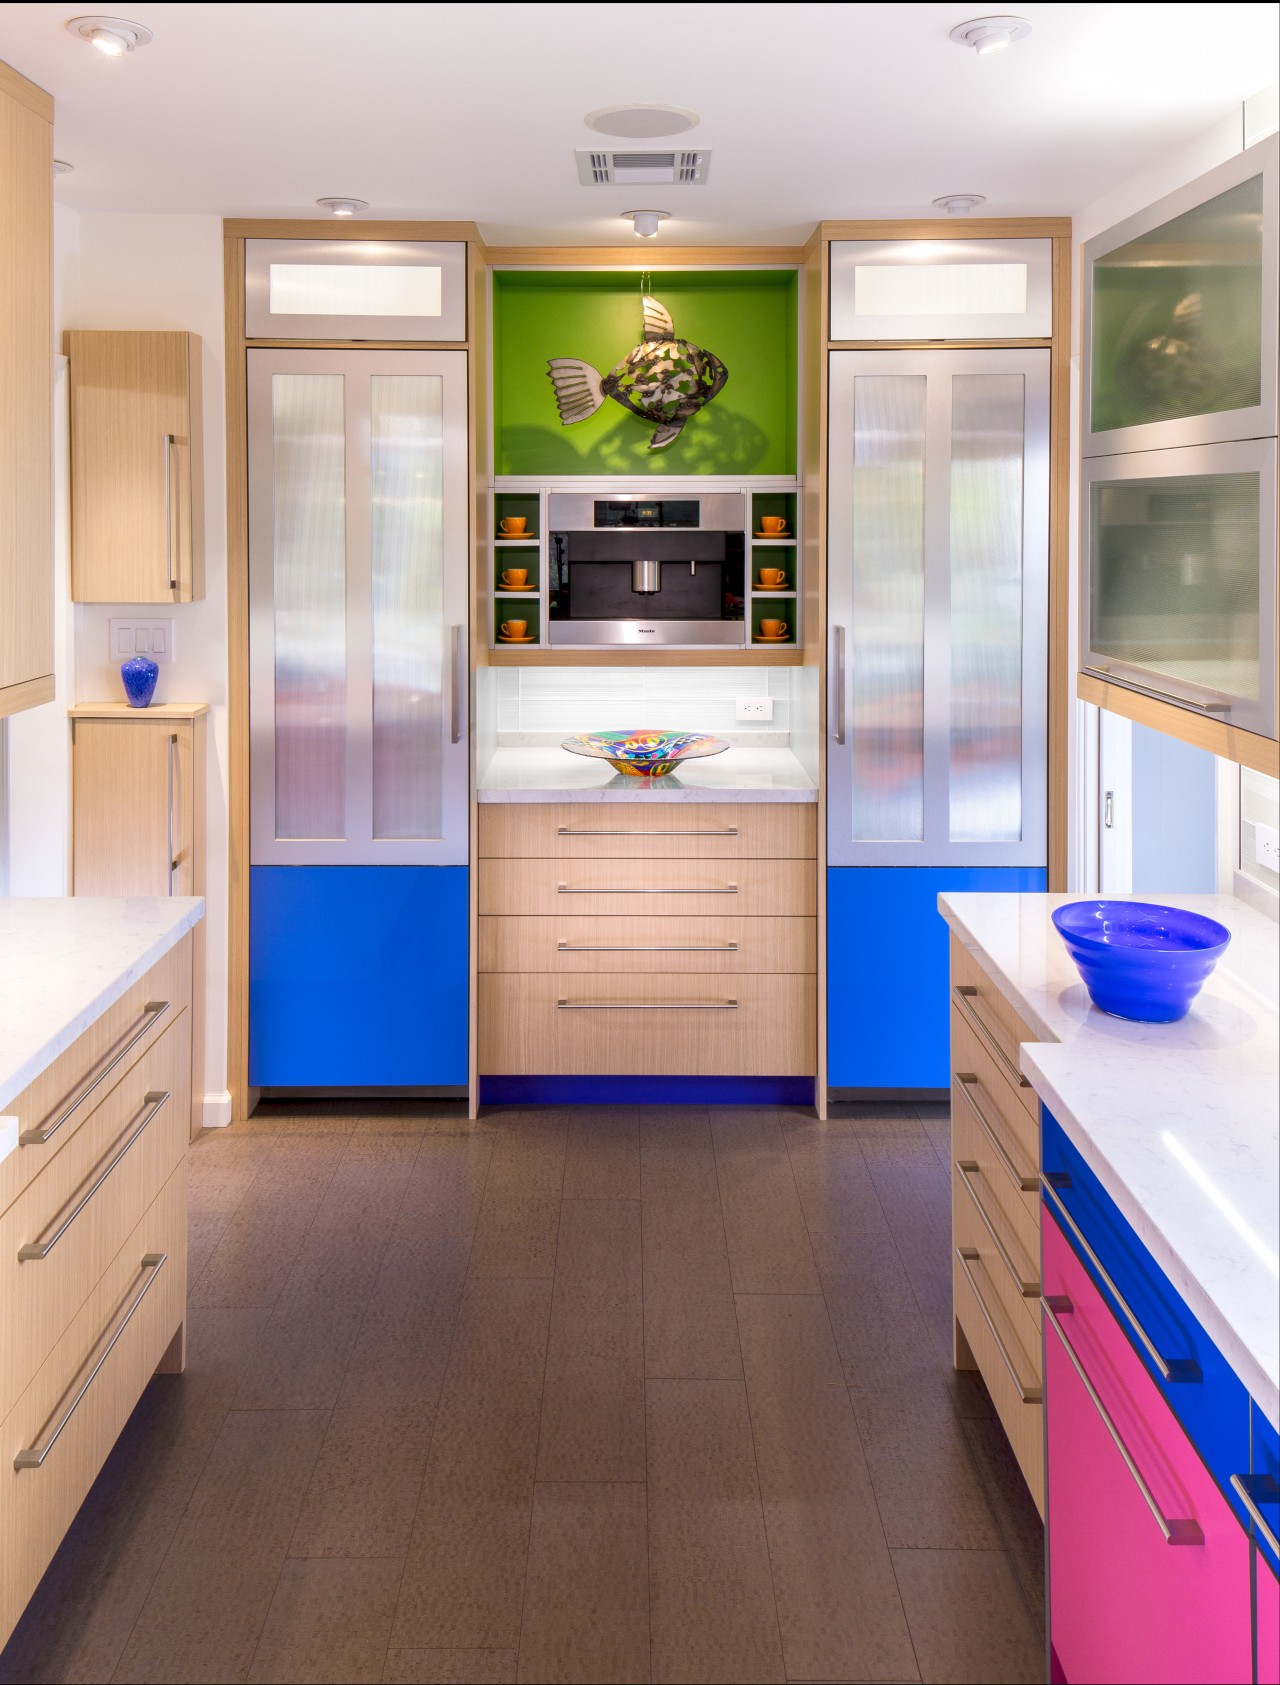 In this colorful kitchen, twin columns accommodating a cabinetry, countertop, home appliance, interior design, kitchen, room, white